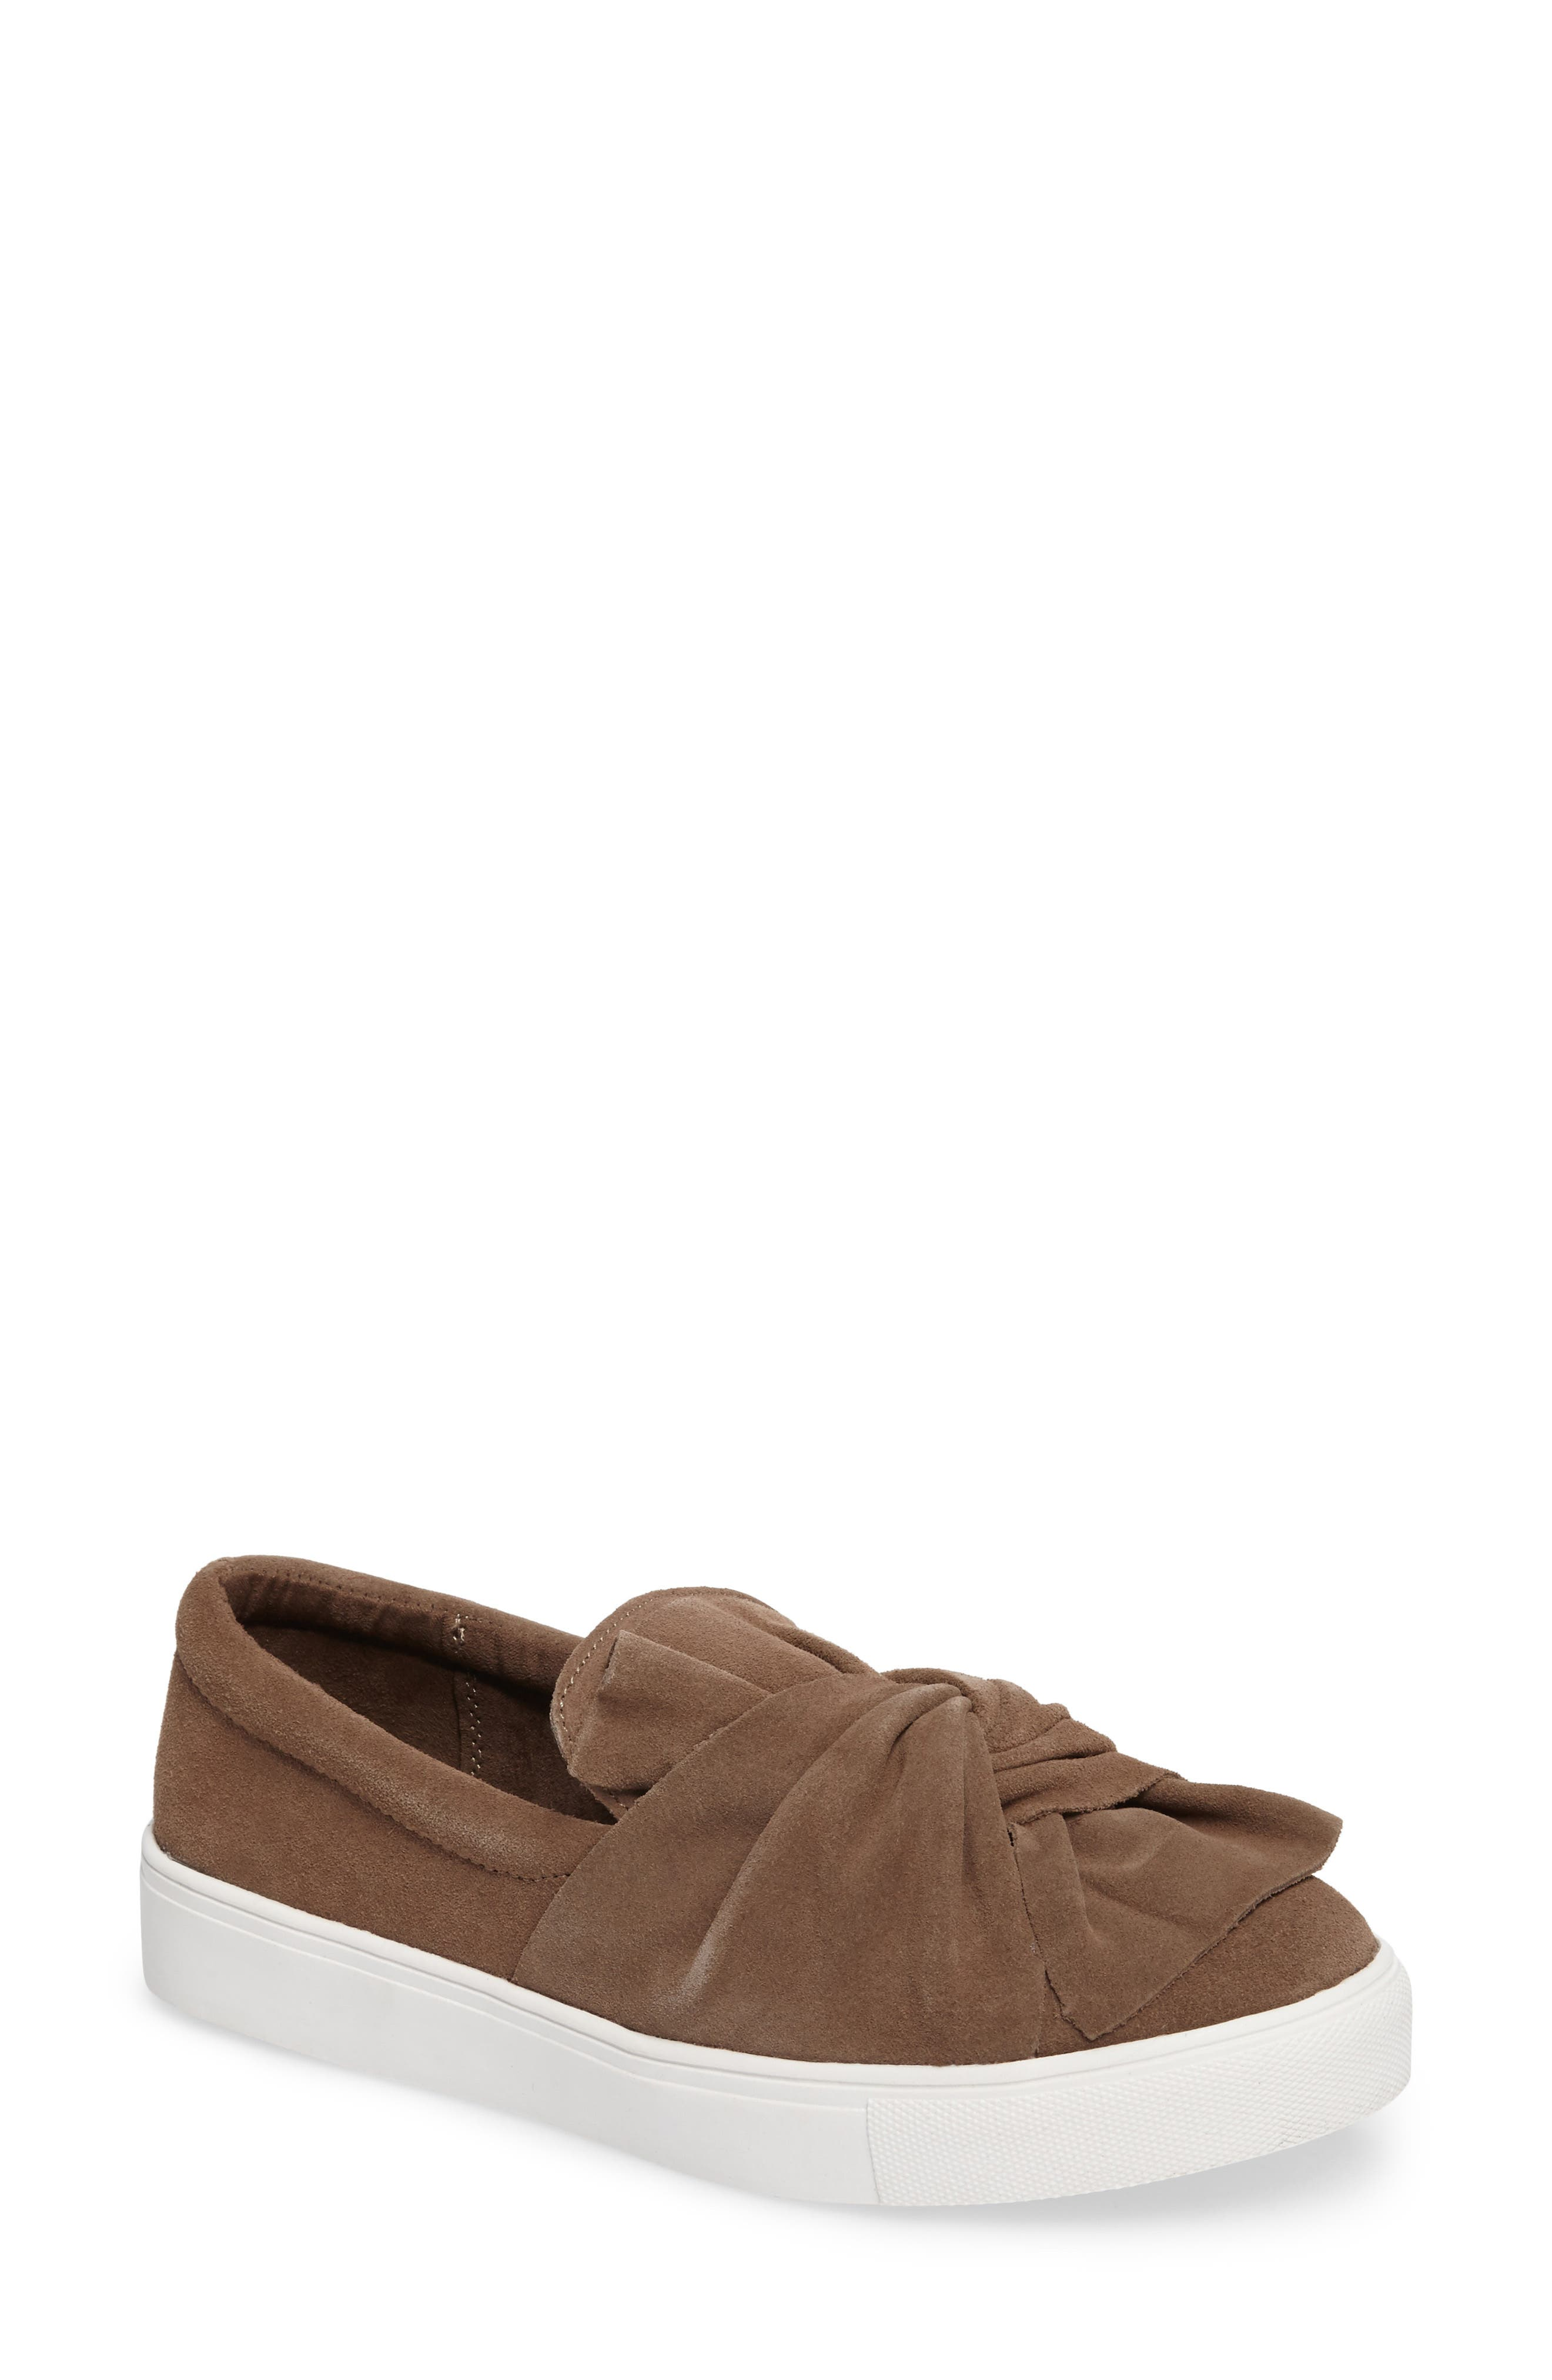 MIA Zahara Slip-On Sneaker (Women)